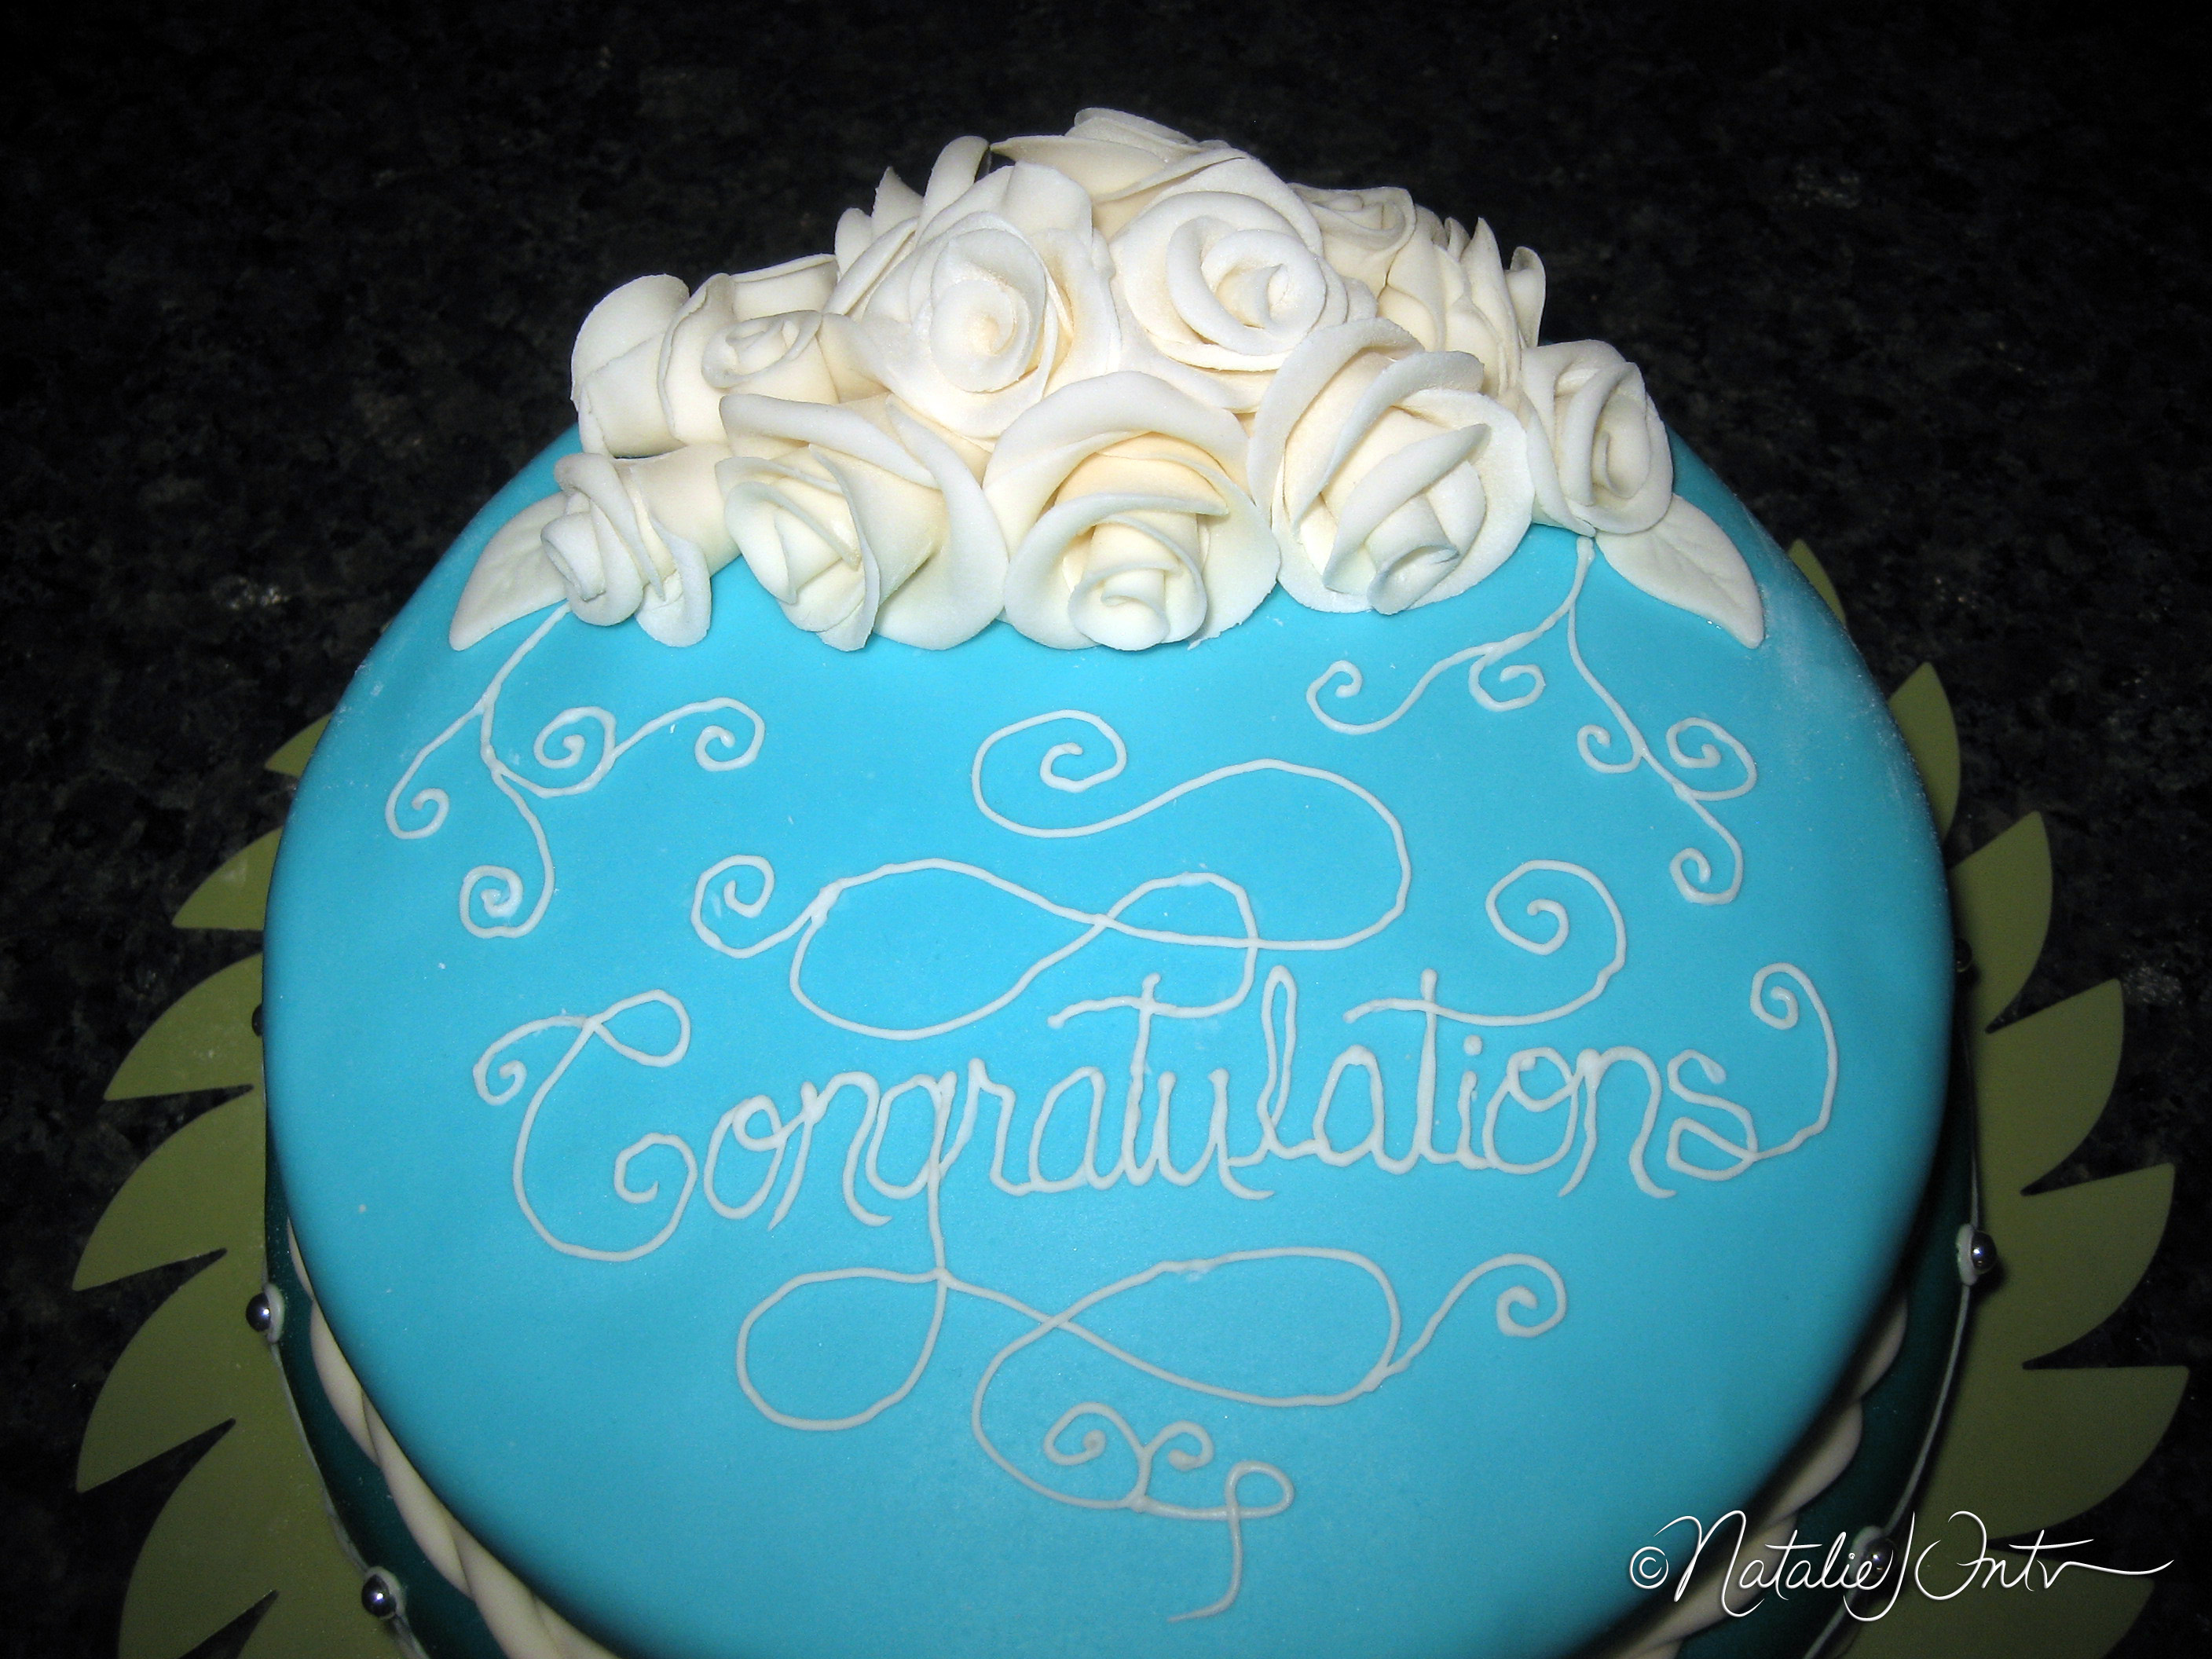 Congratulations Cake (with white roses) Natalie Intven